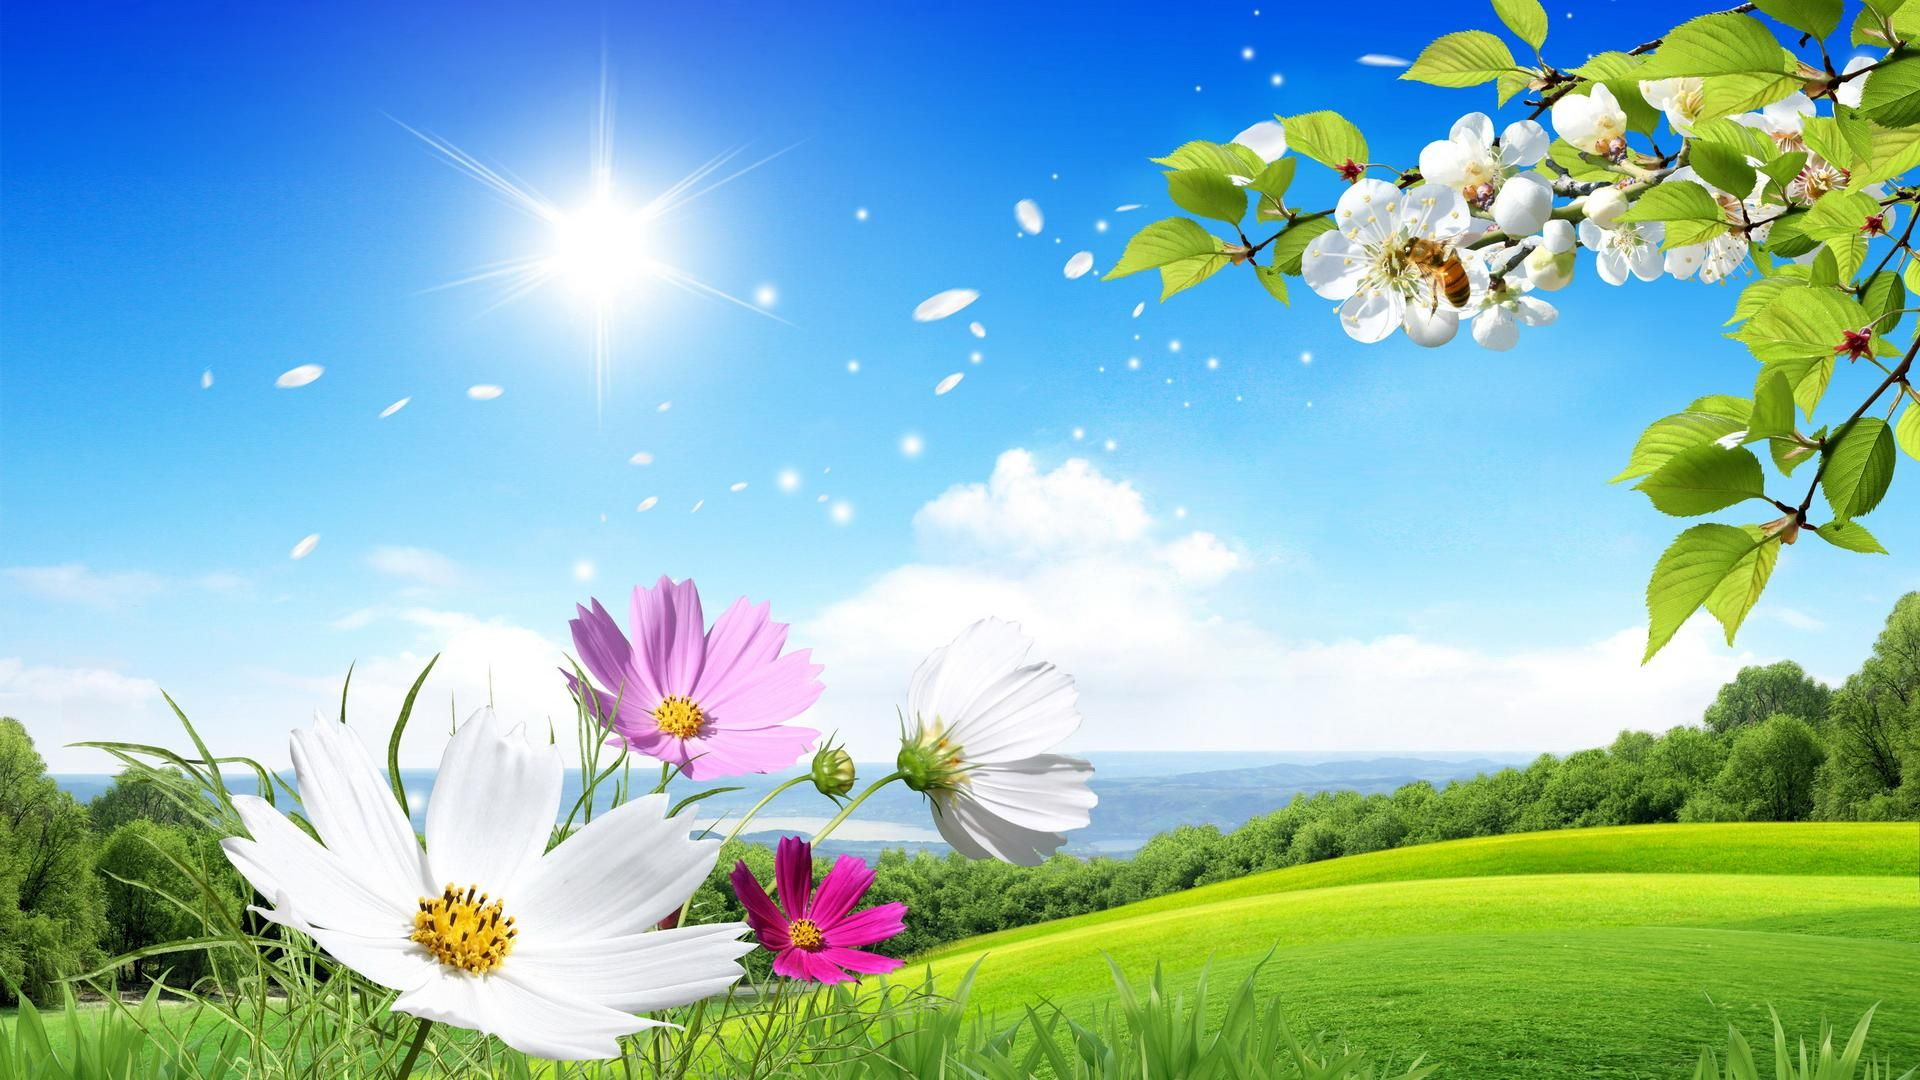 Summer Breeze Haiku Beautiful Summer Wallpaper Scenery Wallpaper Spring Wallpaper